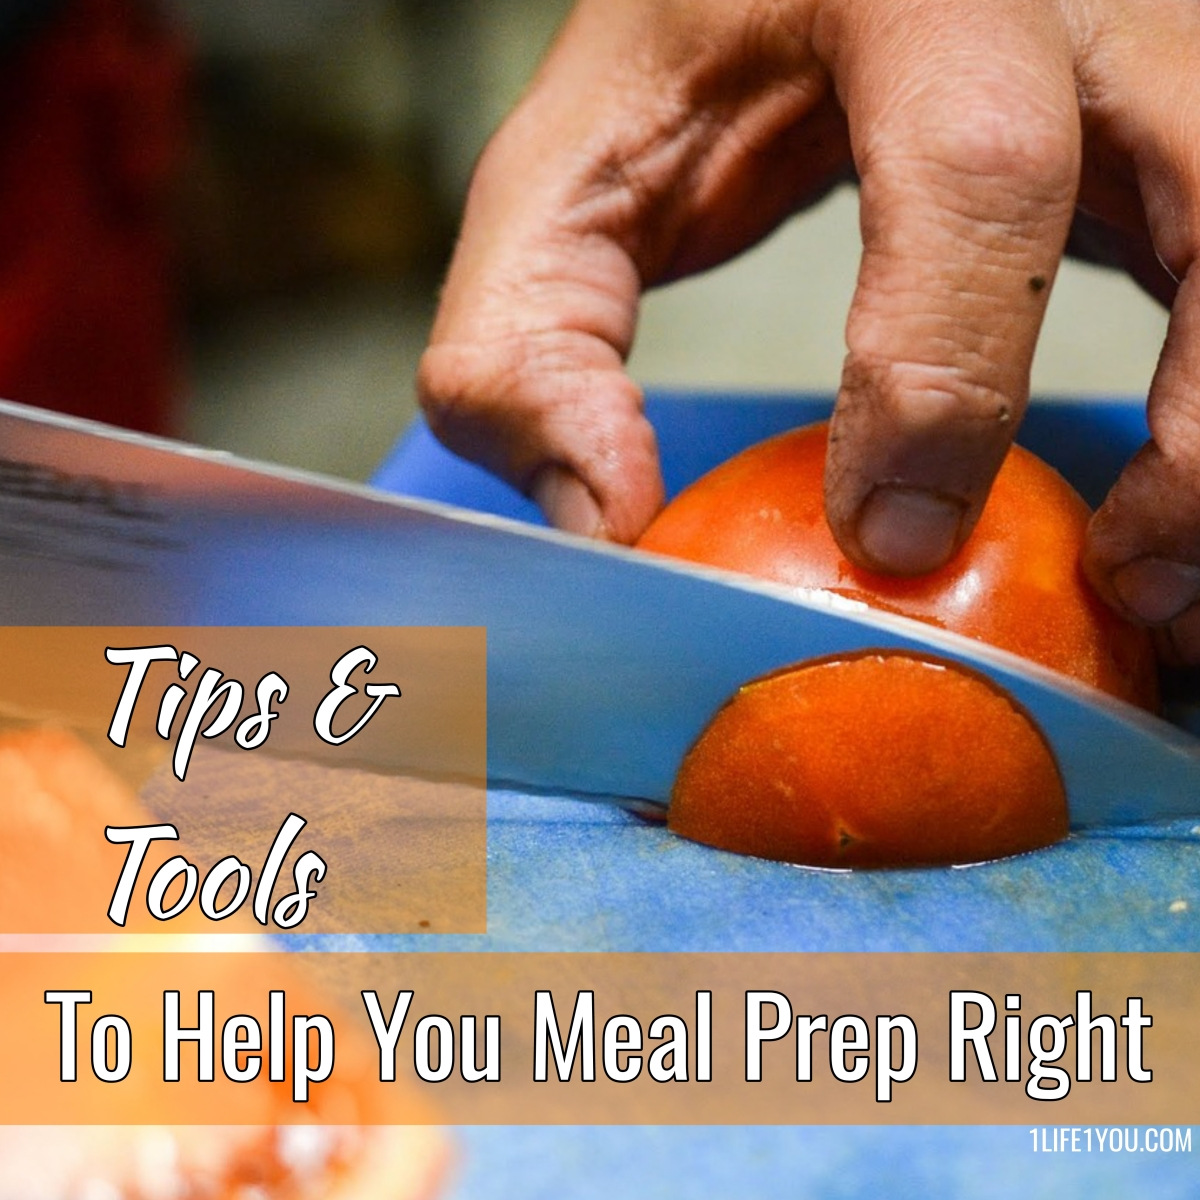 Tips and Tools To Meal Prep Right